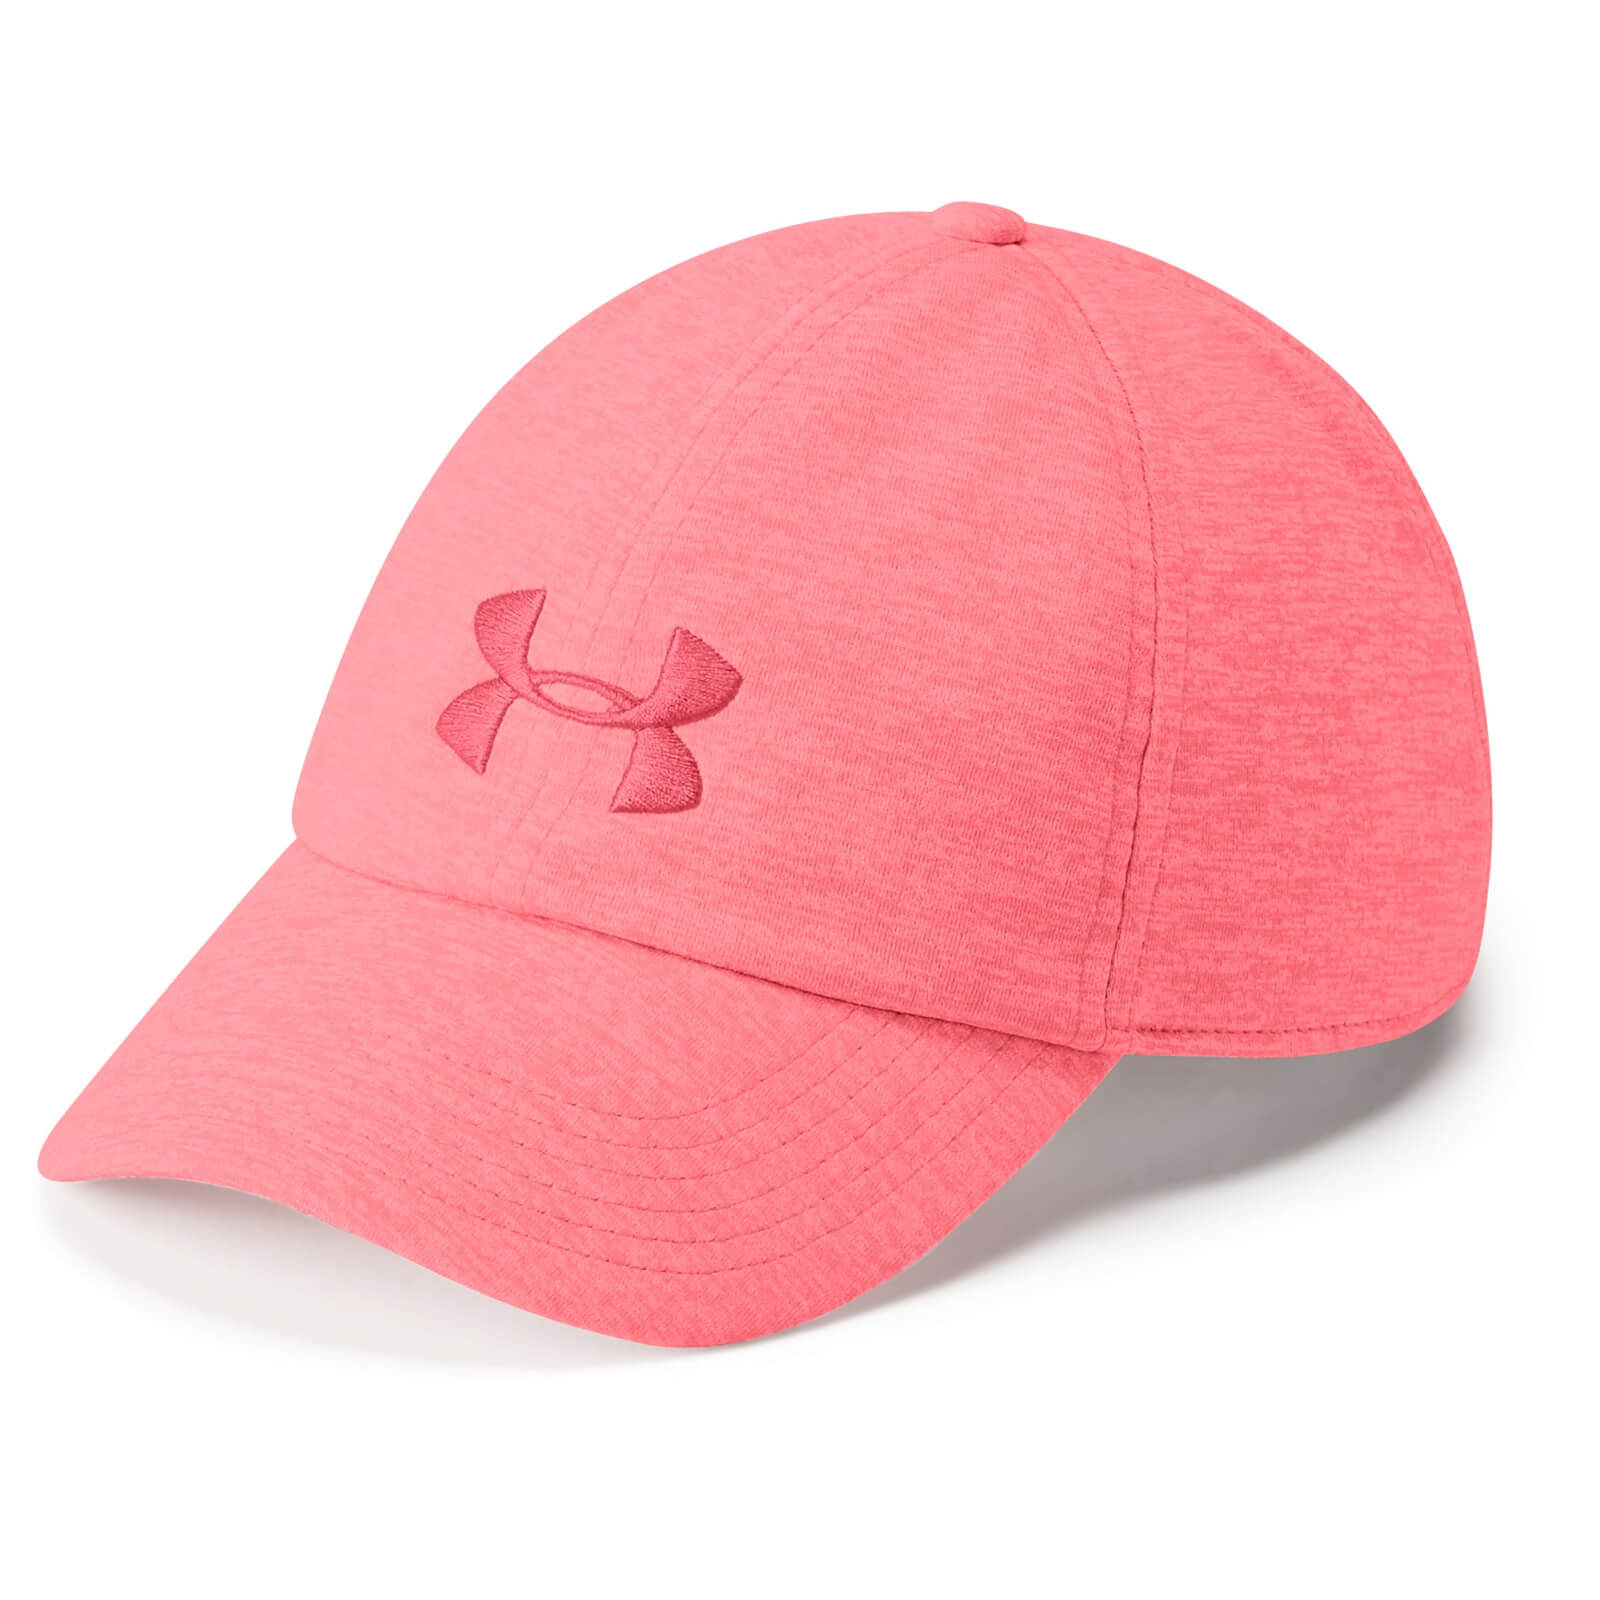 Under Armour Twisted Renegade Cap - Orange